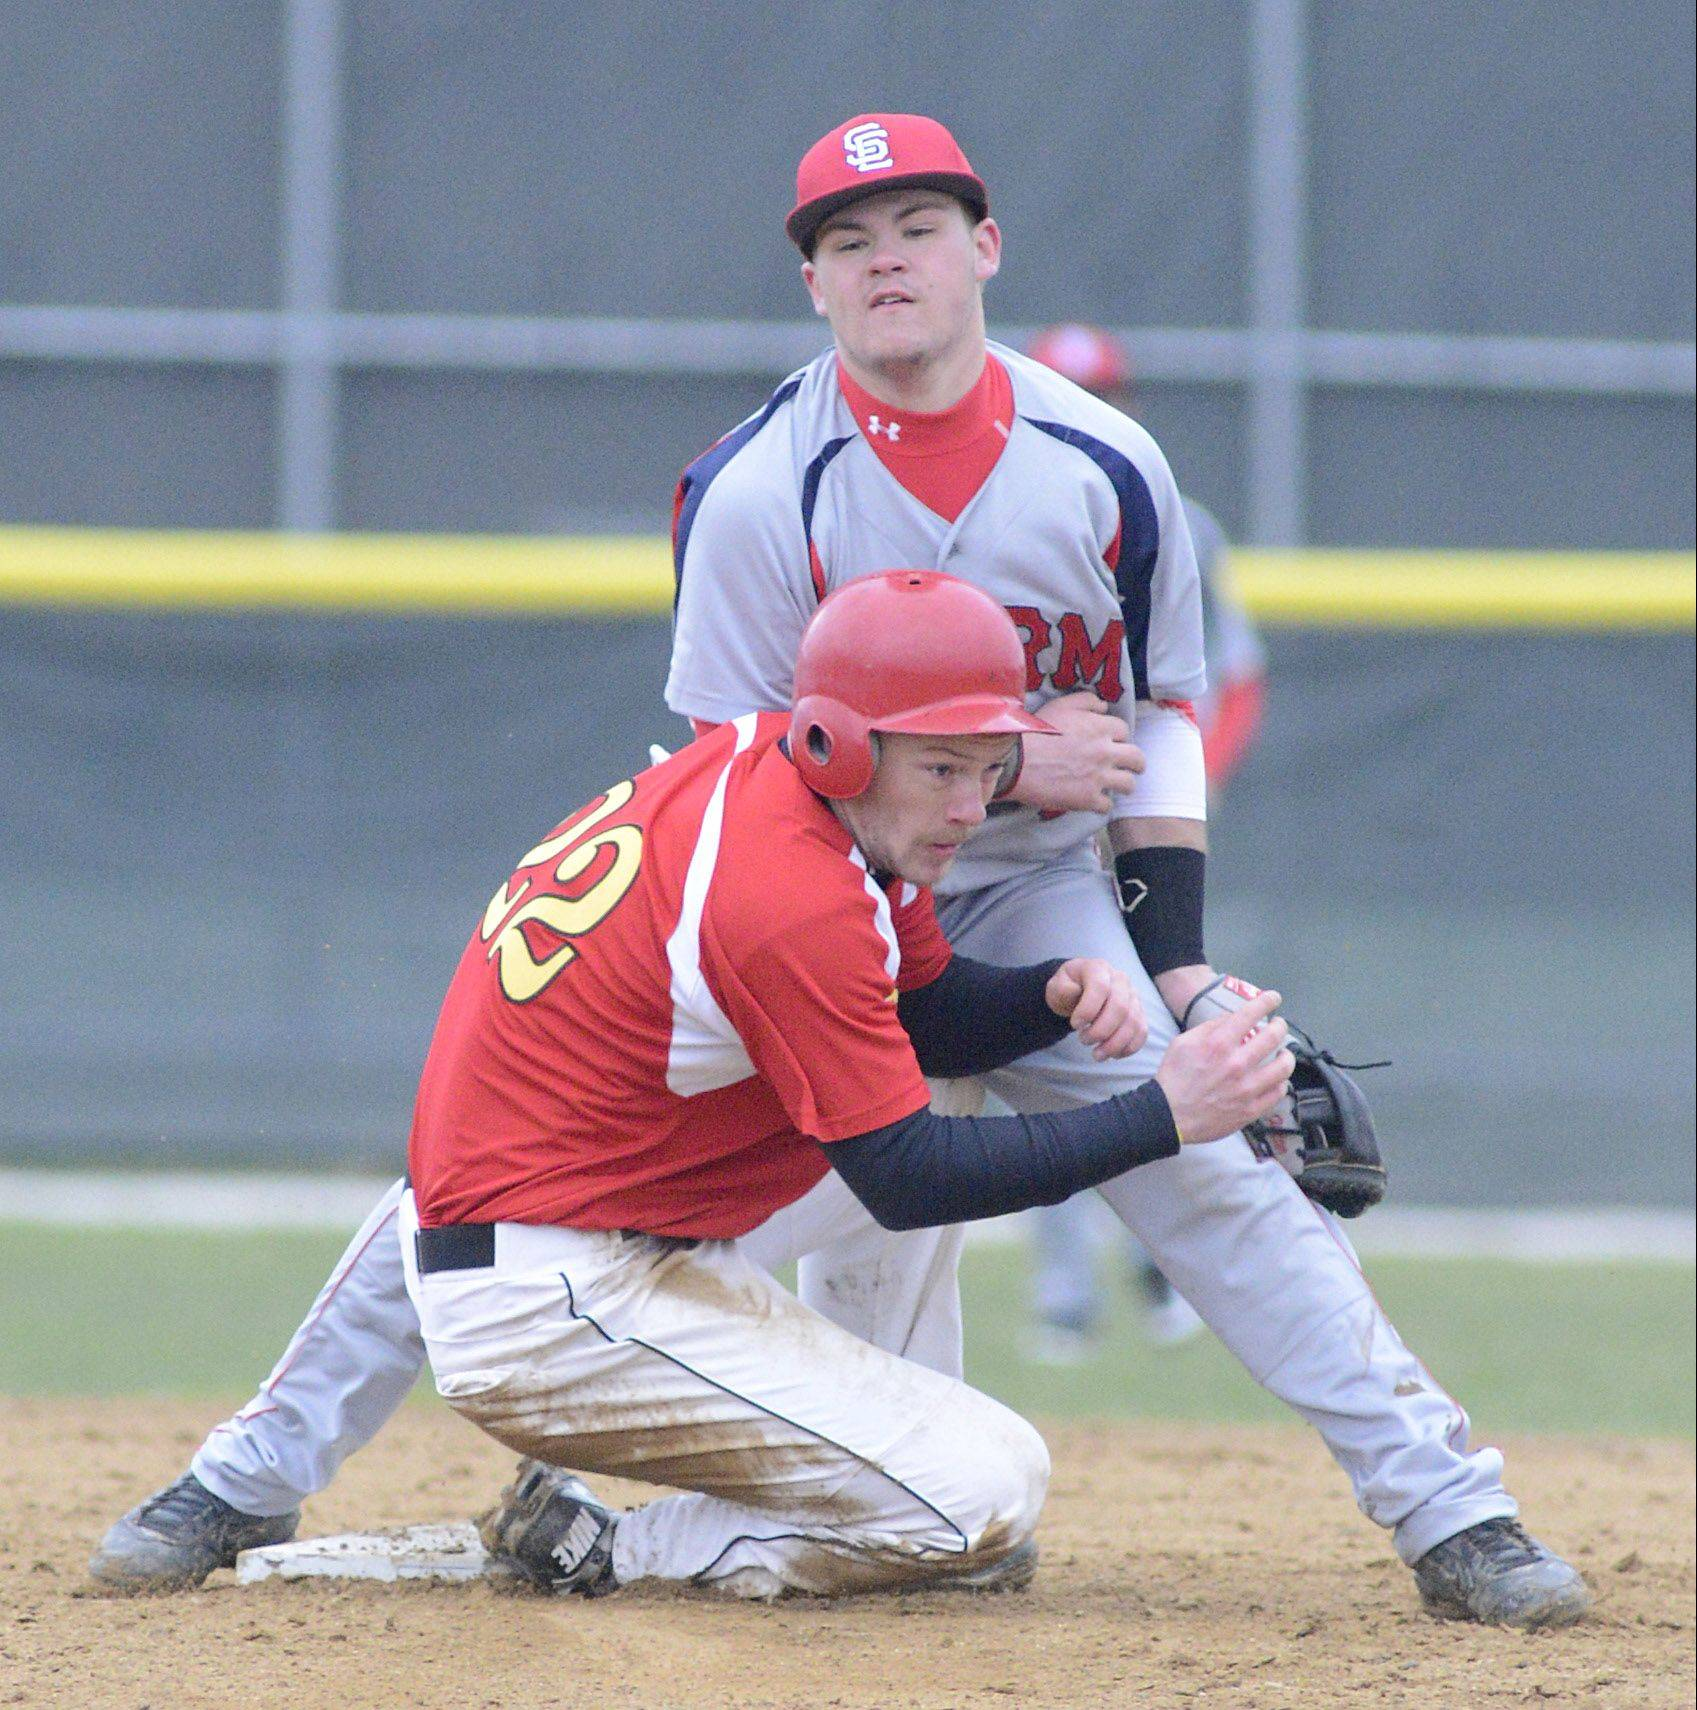 Third-year starter Robbie Bowman breaks up a double play for Batavia against South Elgin's Riley Halter last Friday.